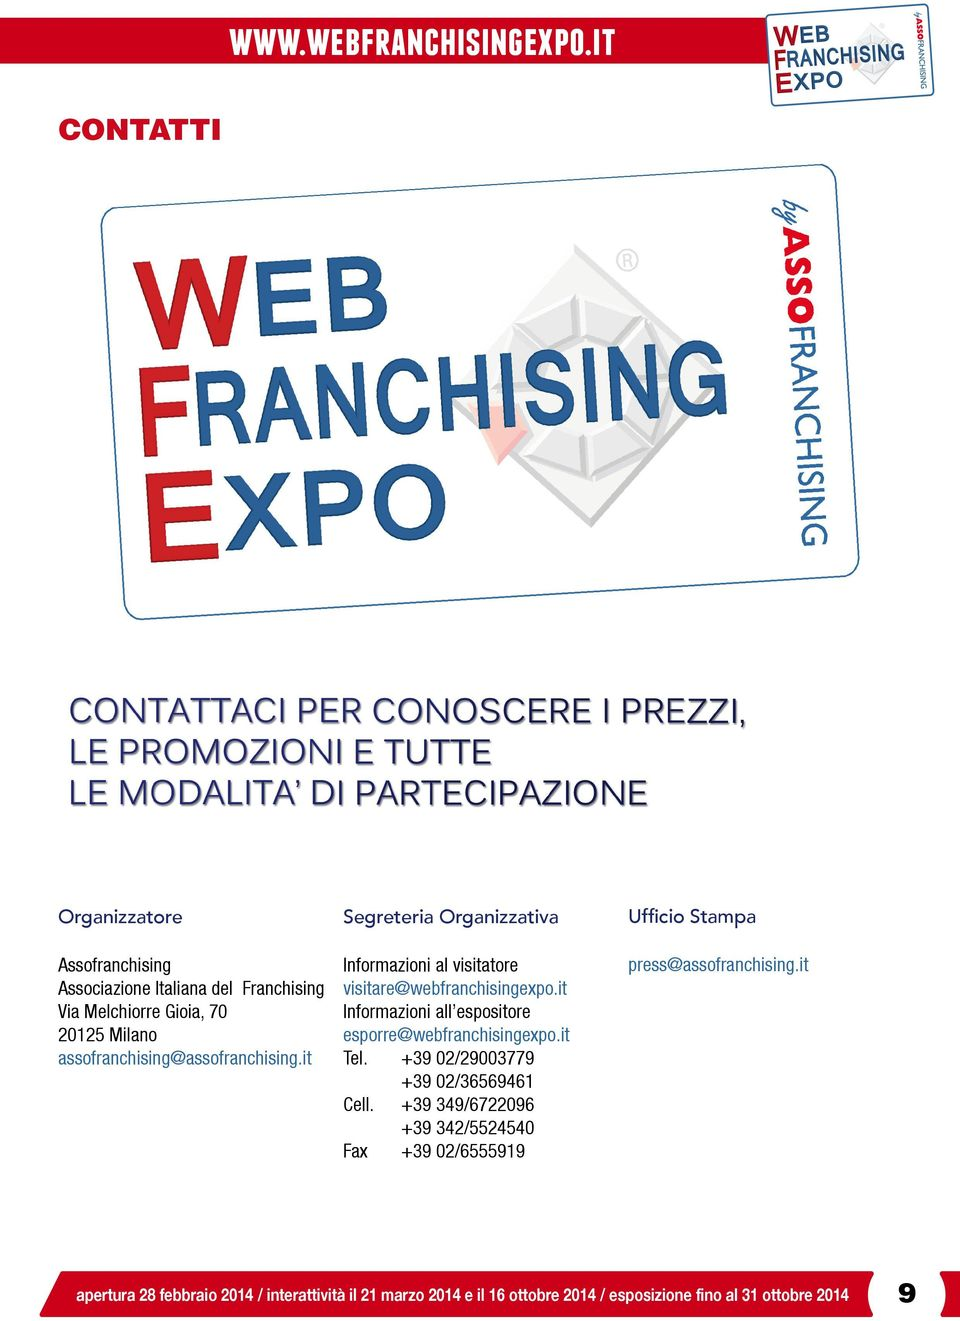 it Informazioni all espositore esporre@webfranchisingexpo.it Tel. +39 02/29003779 +39 02/36569461 Cell.